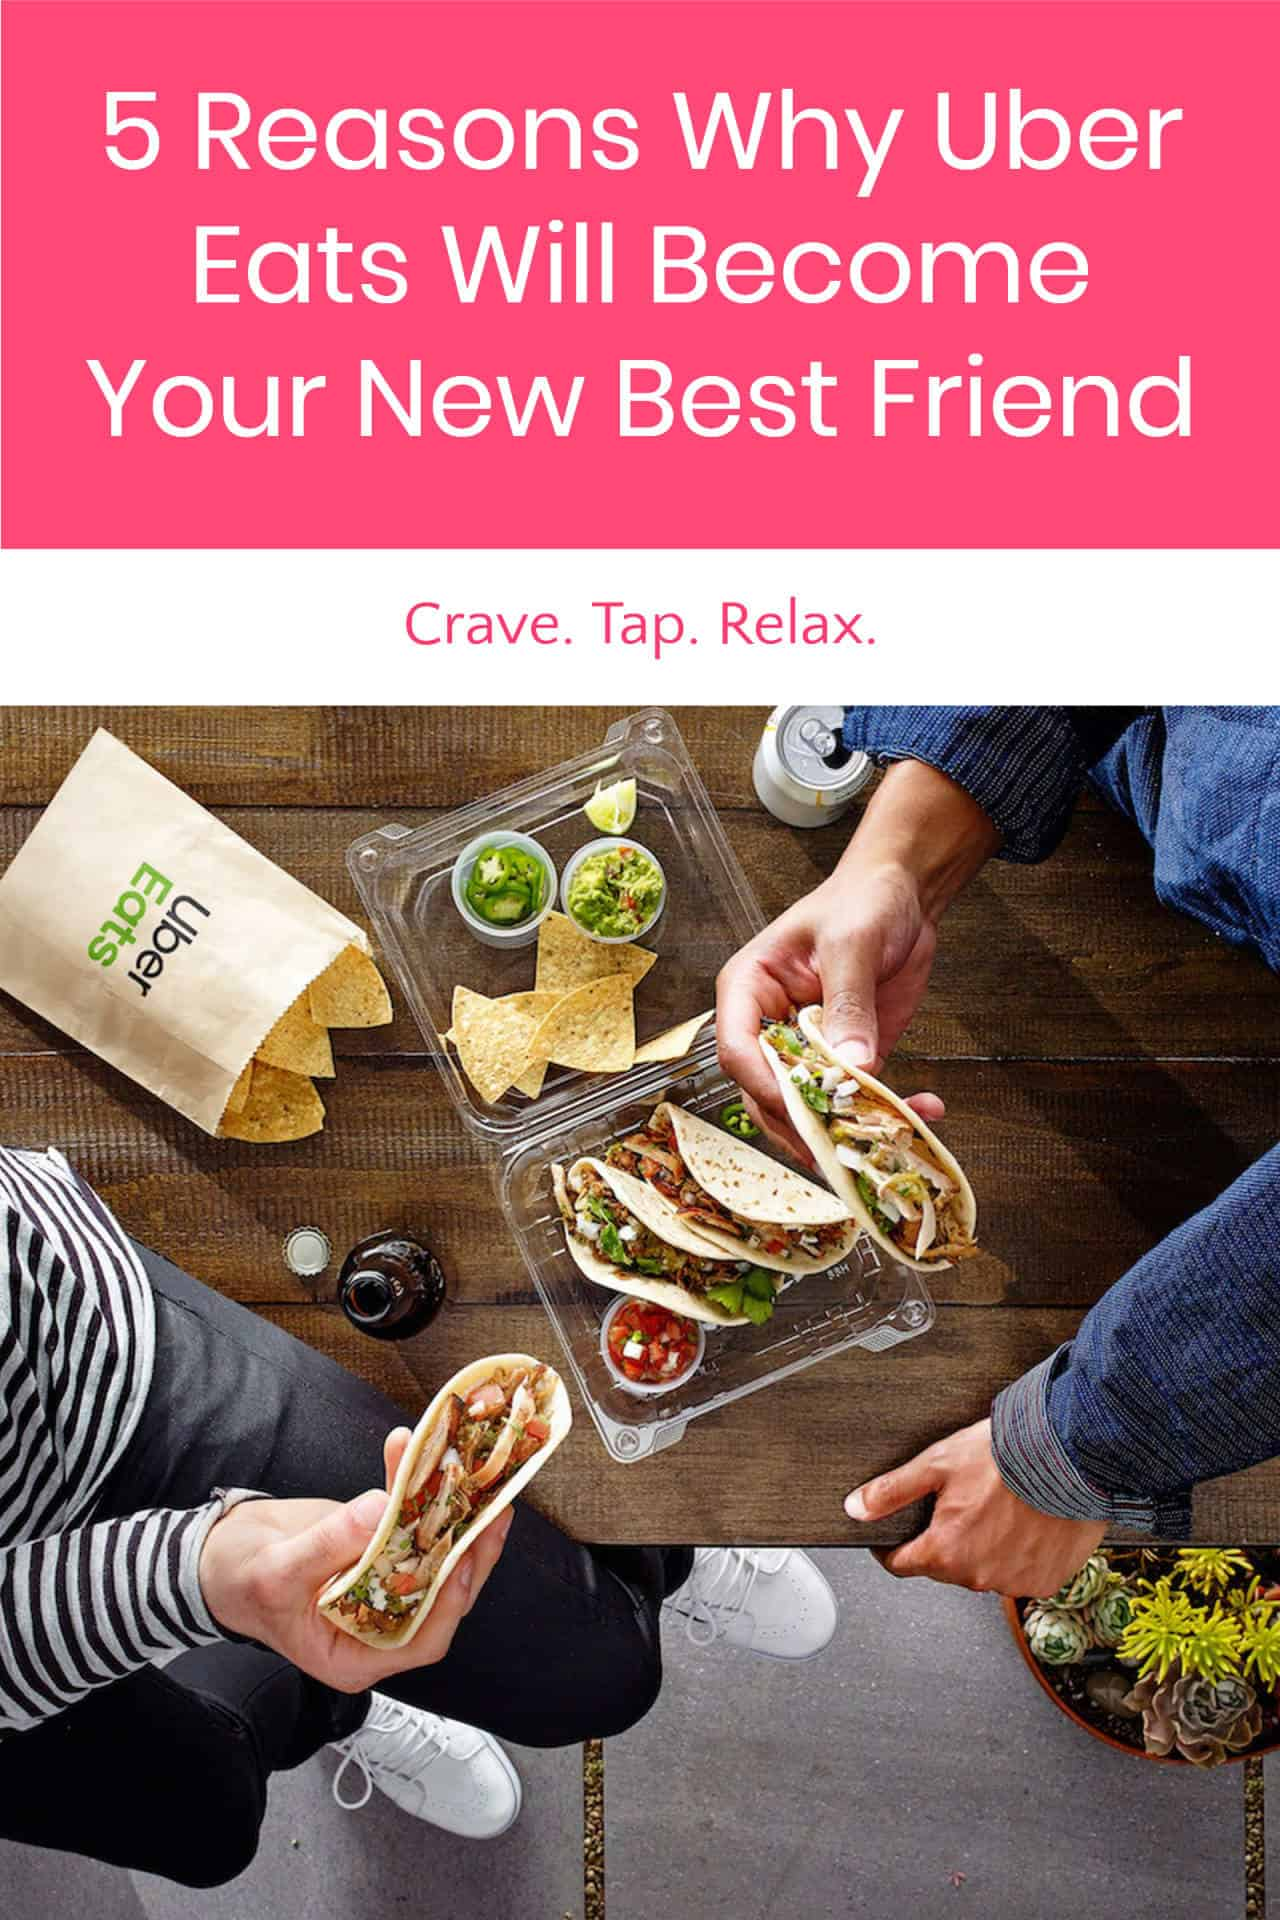 Not in the mood to cook tonight? Craving something special but don\'t have the ingredients? Sign up for UberEats and Crave.Tap.Relax! Find out how!